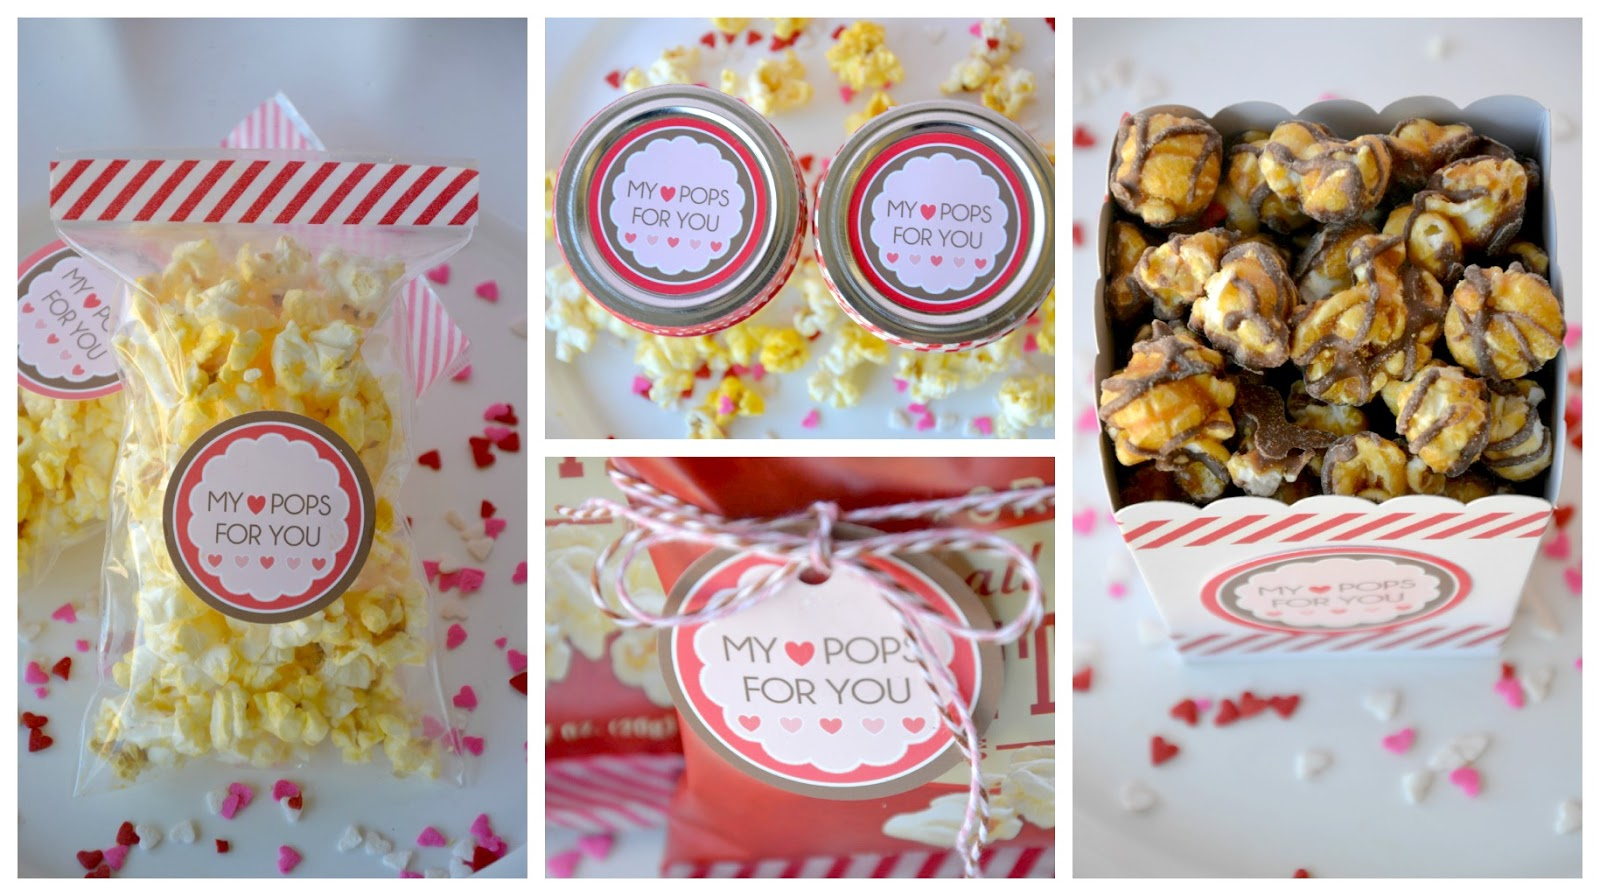 Crissy's Crafts: My Heart Pops For YOU: 4 EASY Valentine's Party